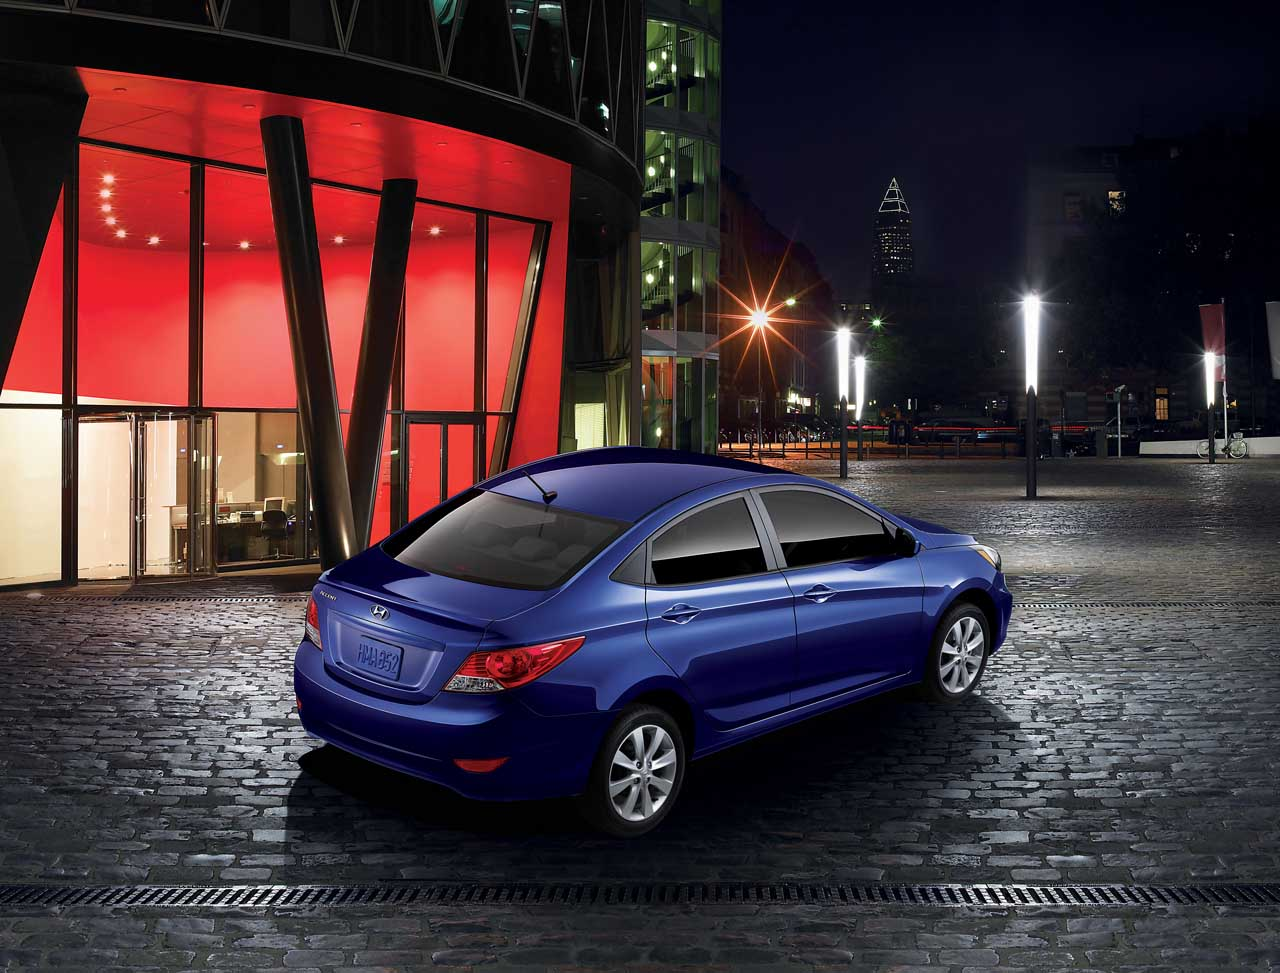 2013 Hyundai Accent Rear Angle (View 12 of 18)